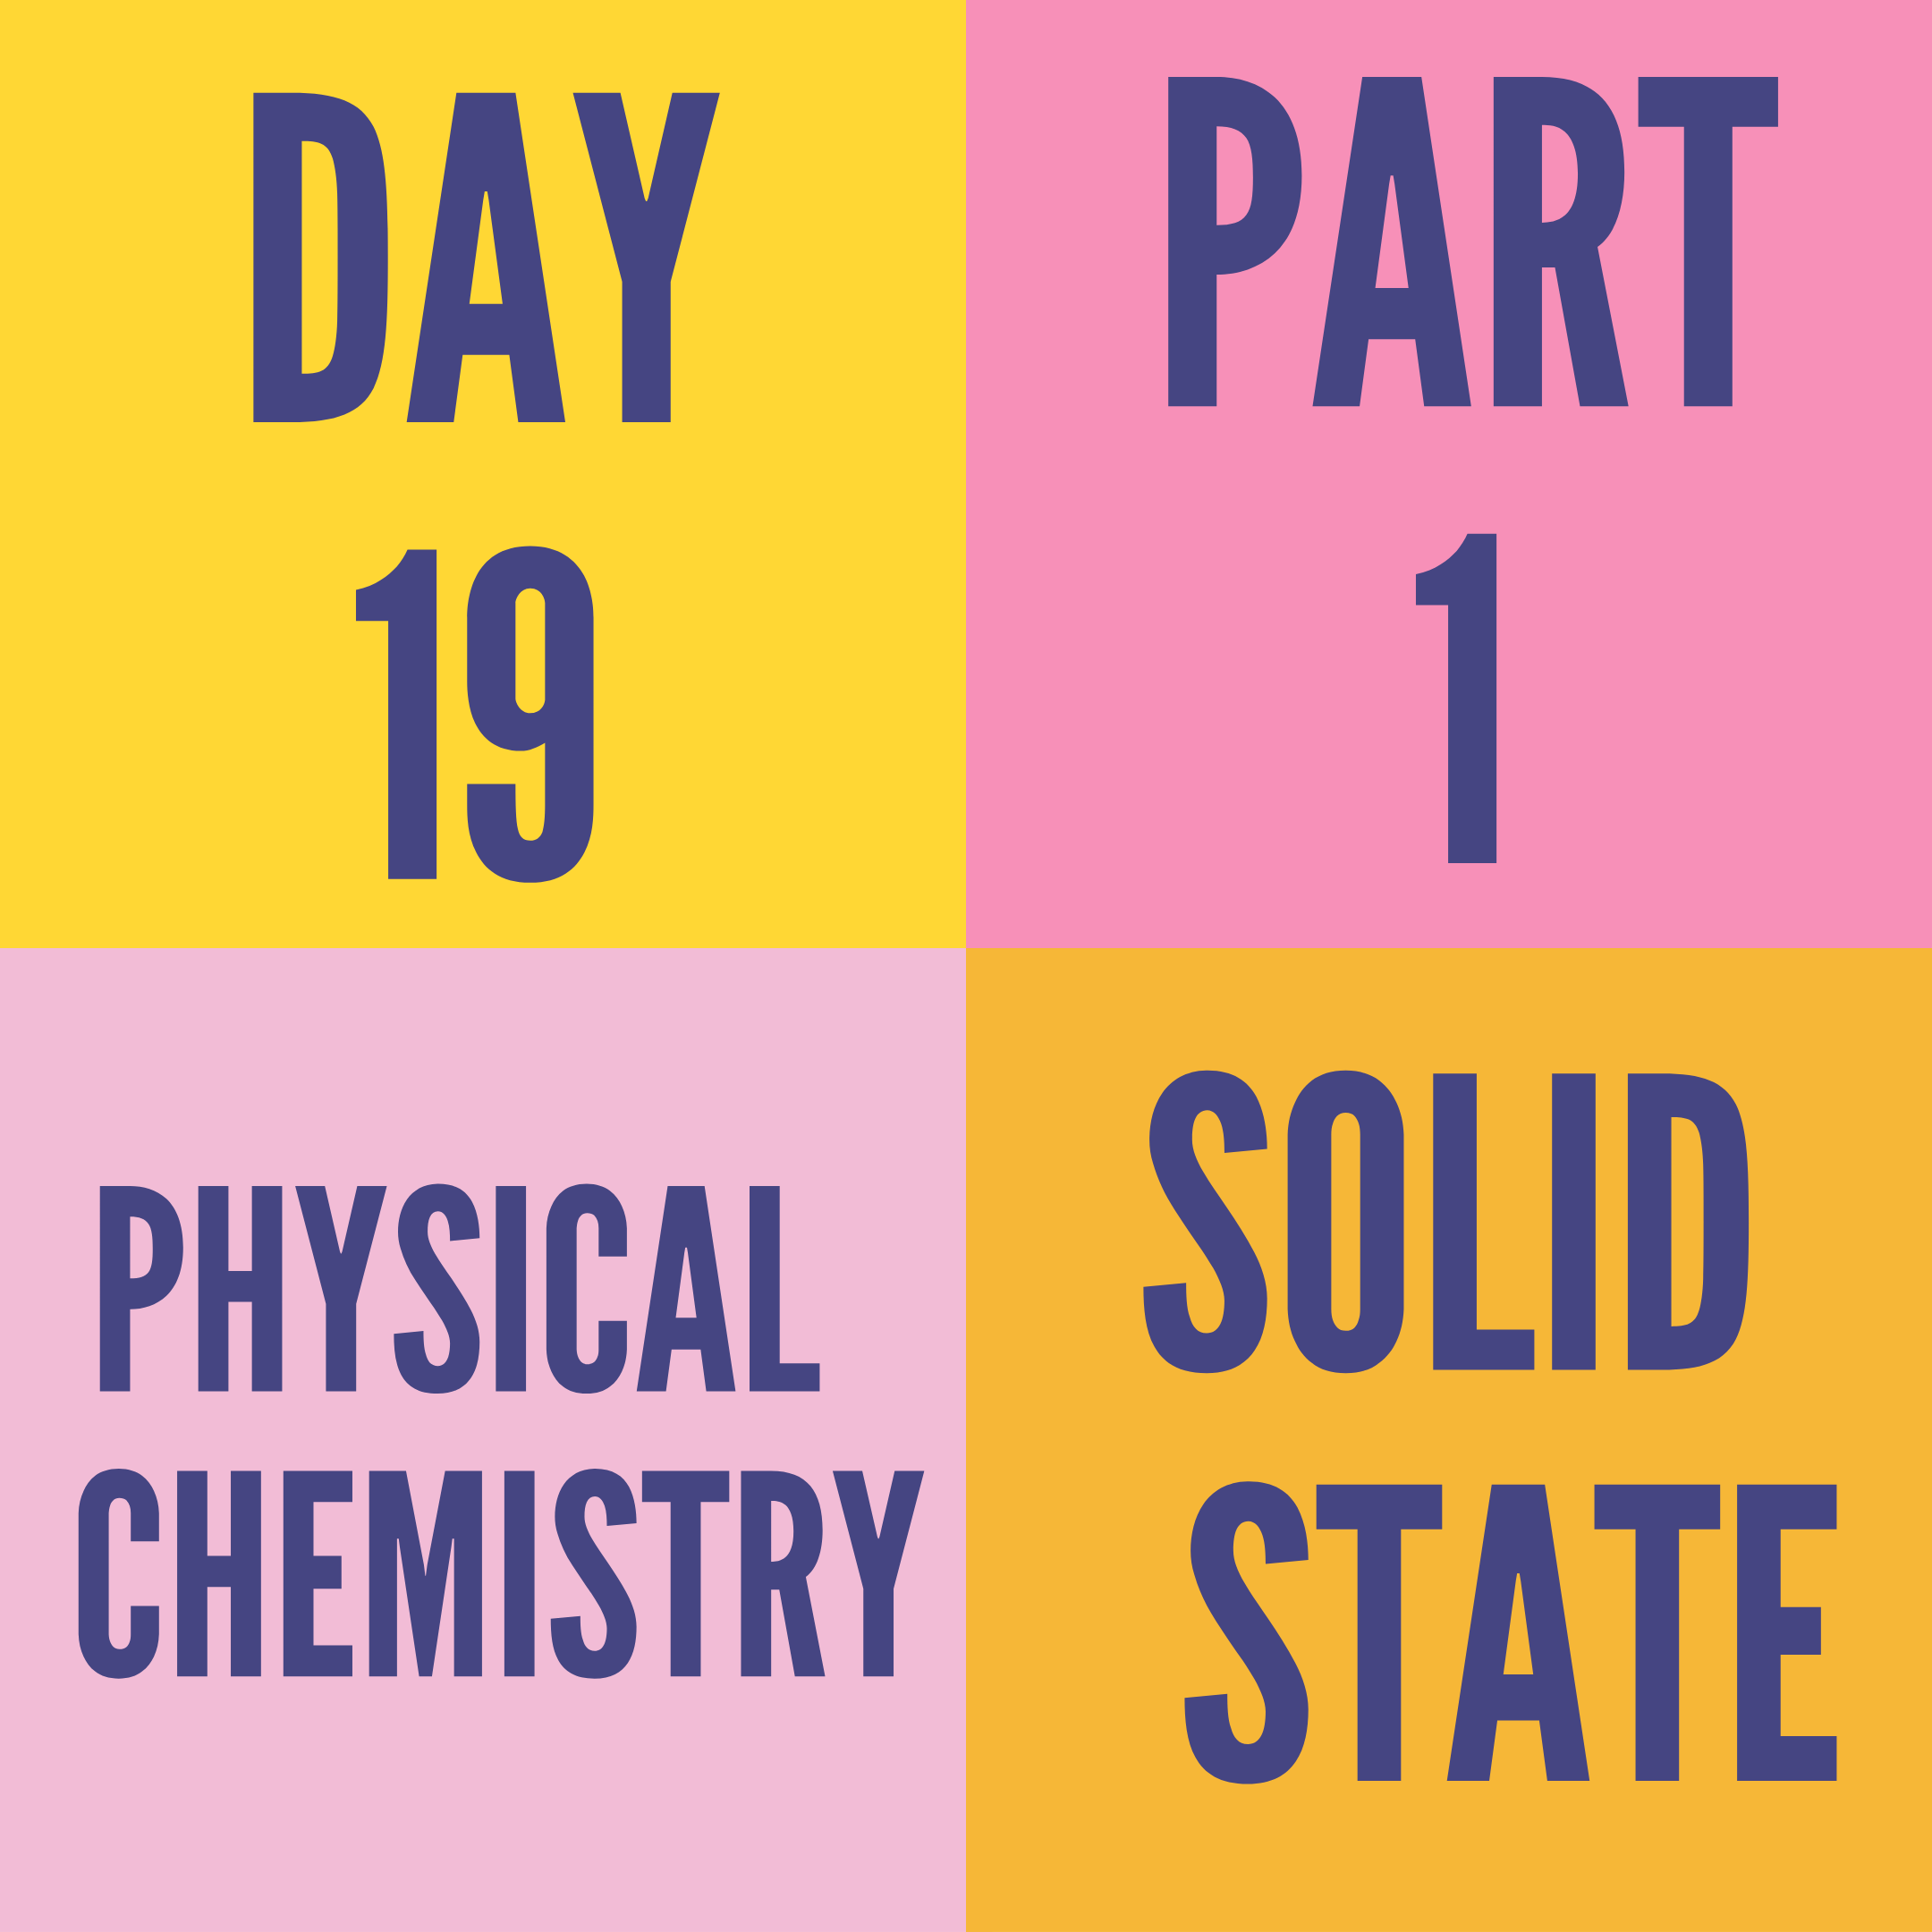 DAY-19 PART-1 SOLID STATE